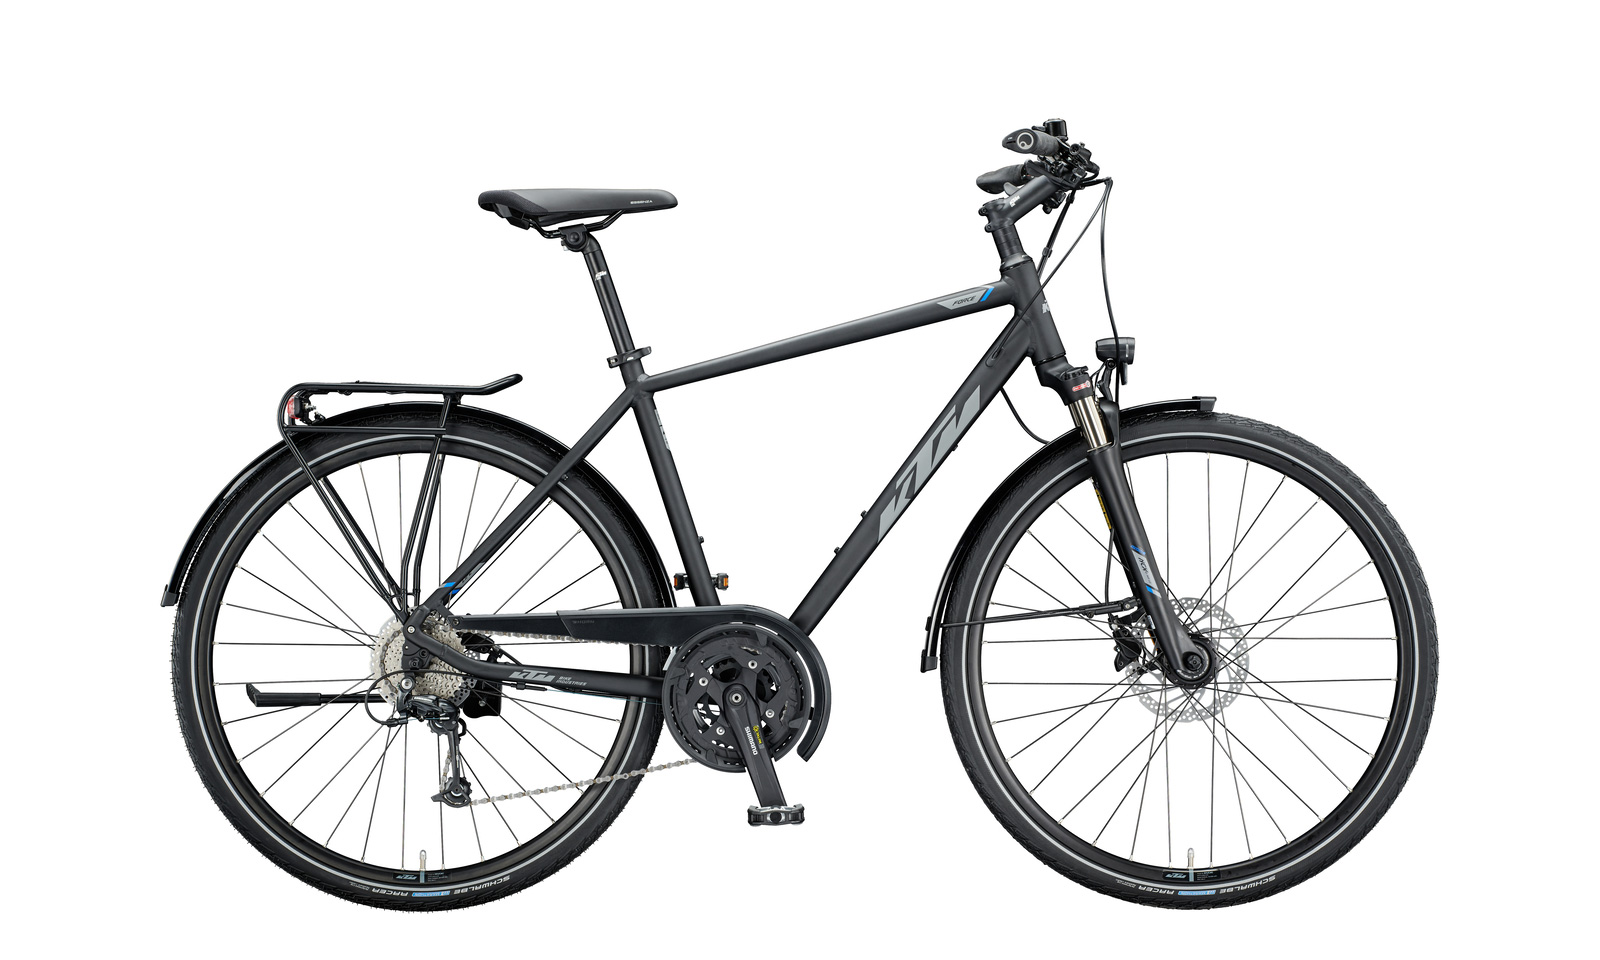 Biciclete KTM Trekking Onroad LIFE FORCE 3x9 Shimano Deore